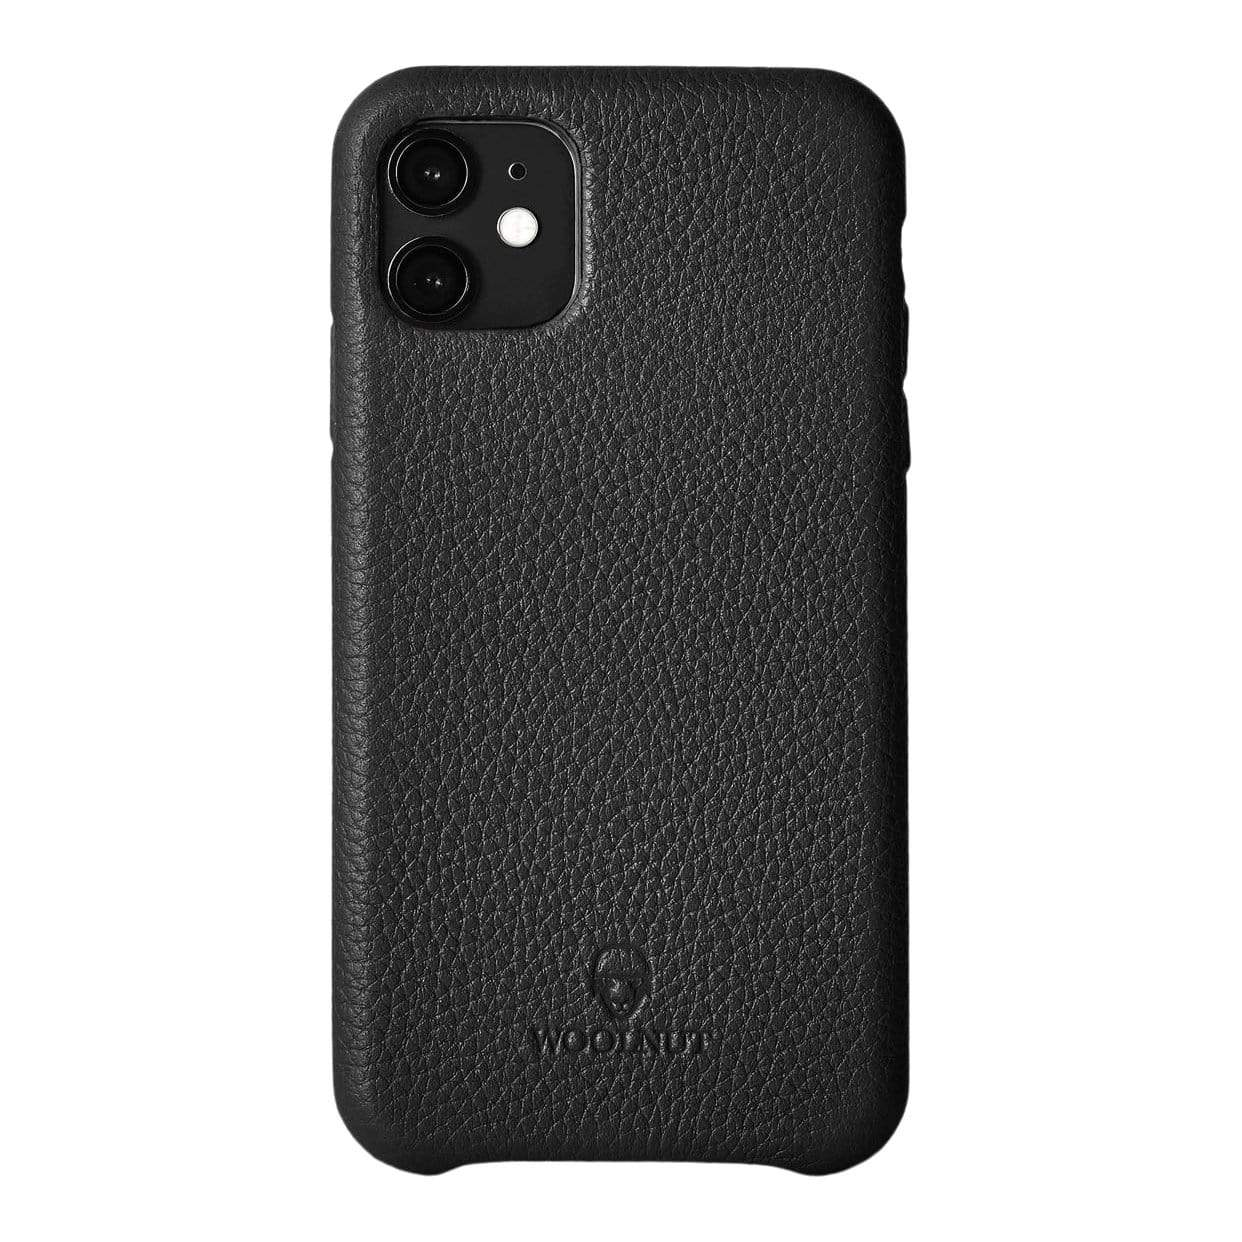 Woolnut Tech Cases Black iPhone 11 Case